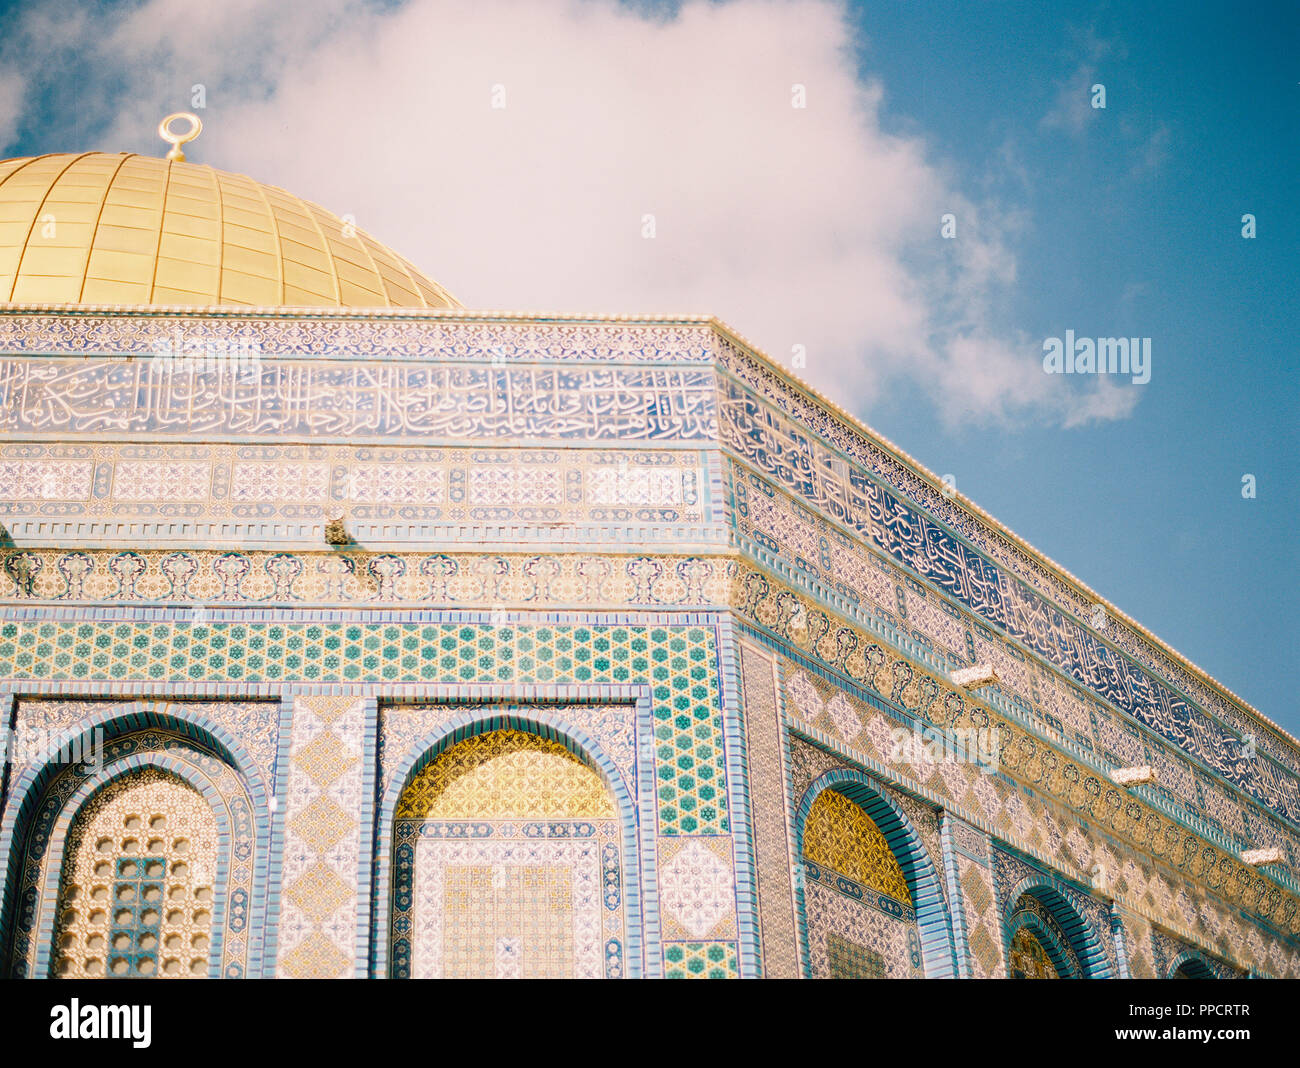 View of ornate architectural details of Dome of the Rock, Jerusalem, Israel Stock Photo